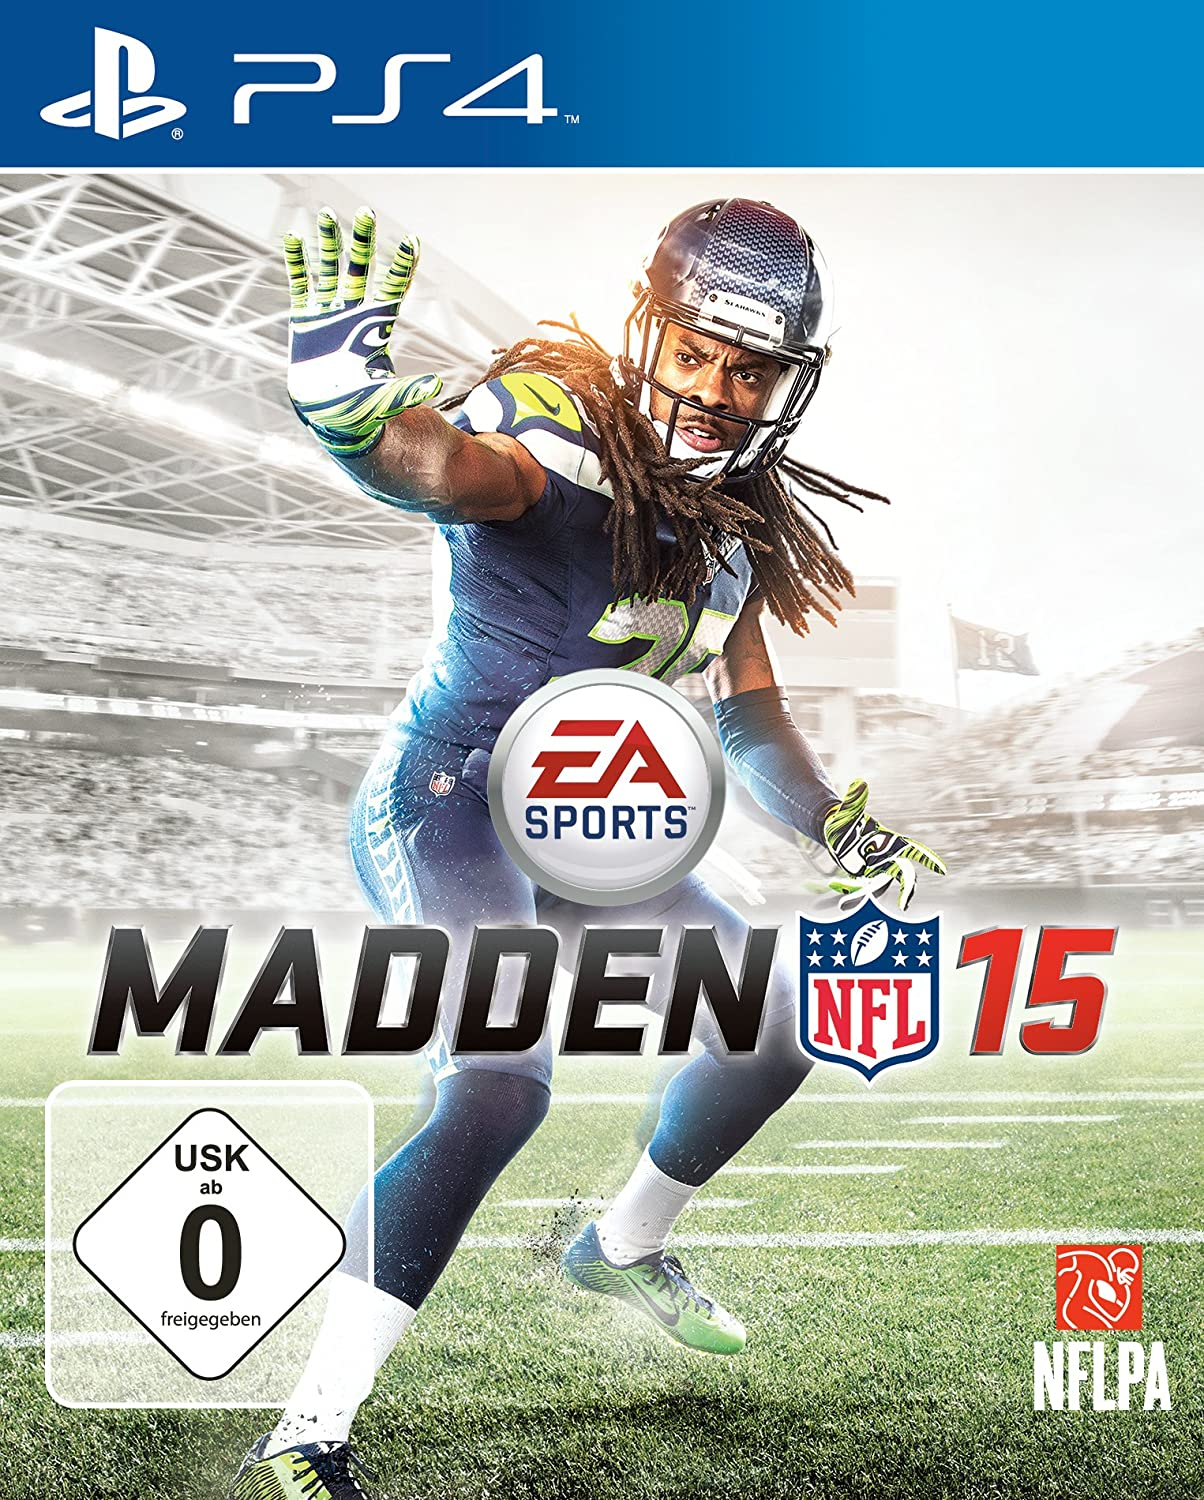 Madden NFL 15 Superbowl